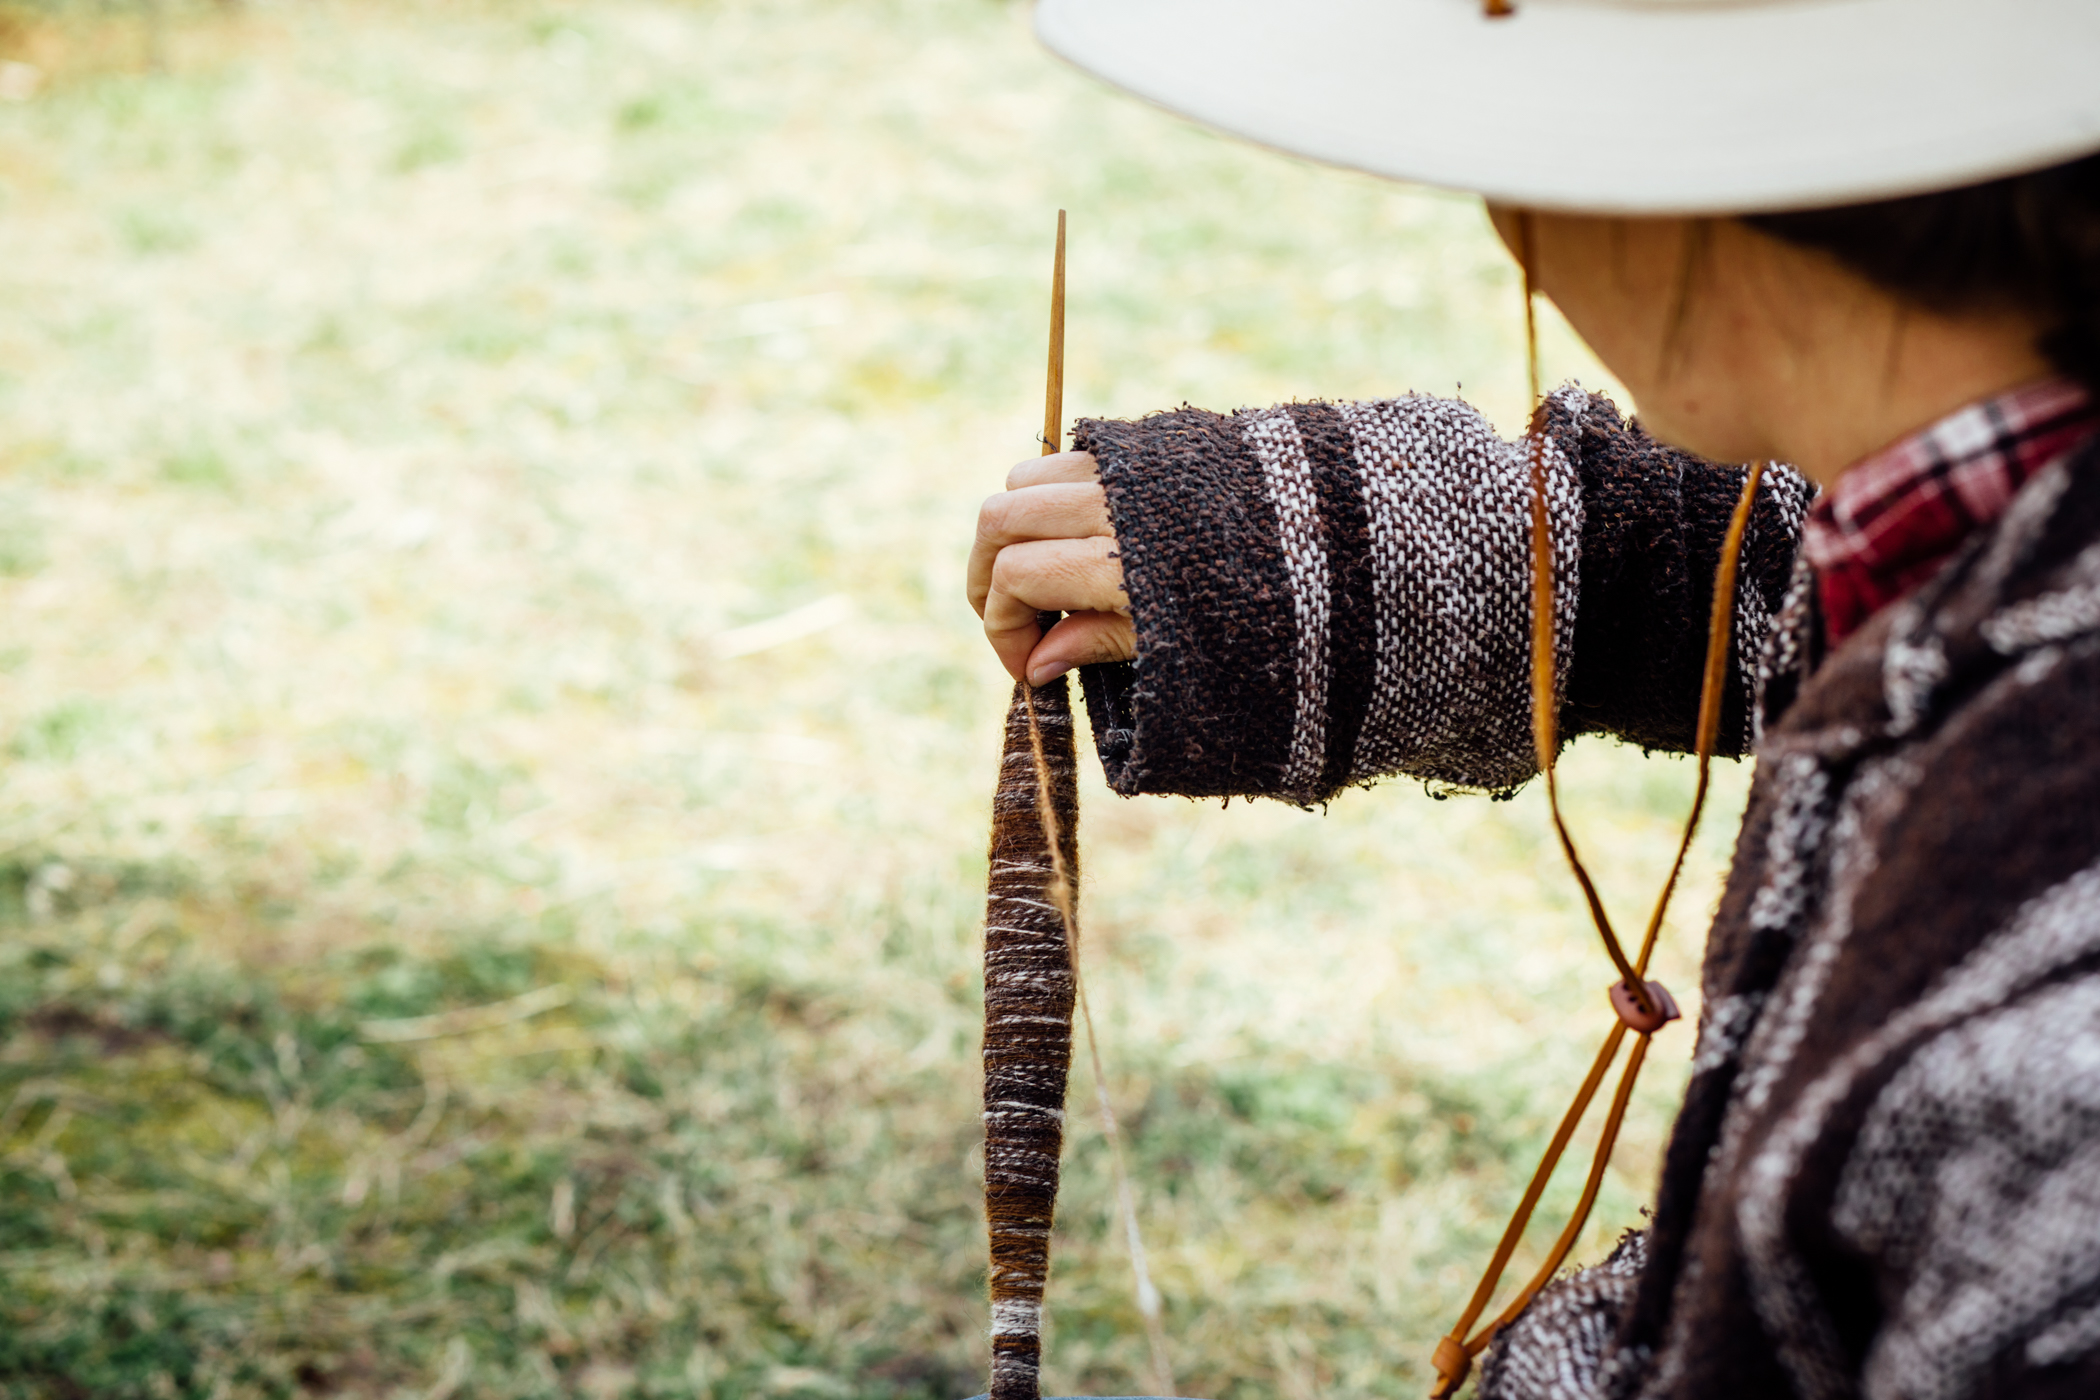 Spinning Alpaca fiber on a support spindle: image by Grace Boto